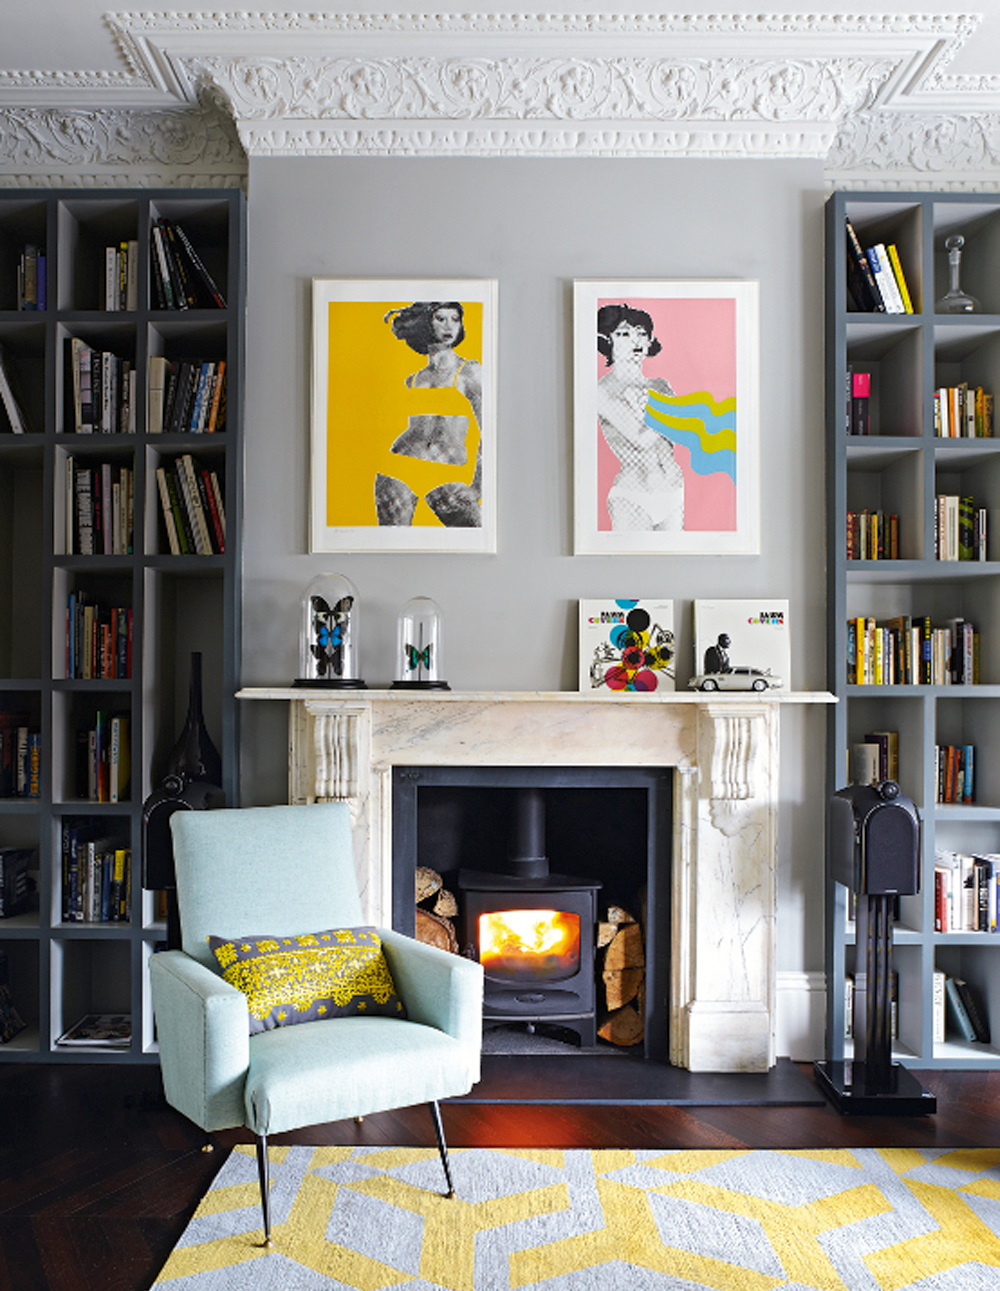 Bold Art Can Do So Much For A Room Gerald Laings Pop Prints Really Warm Up This Grey Living Image Livingetc